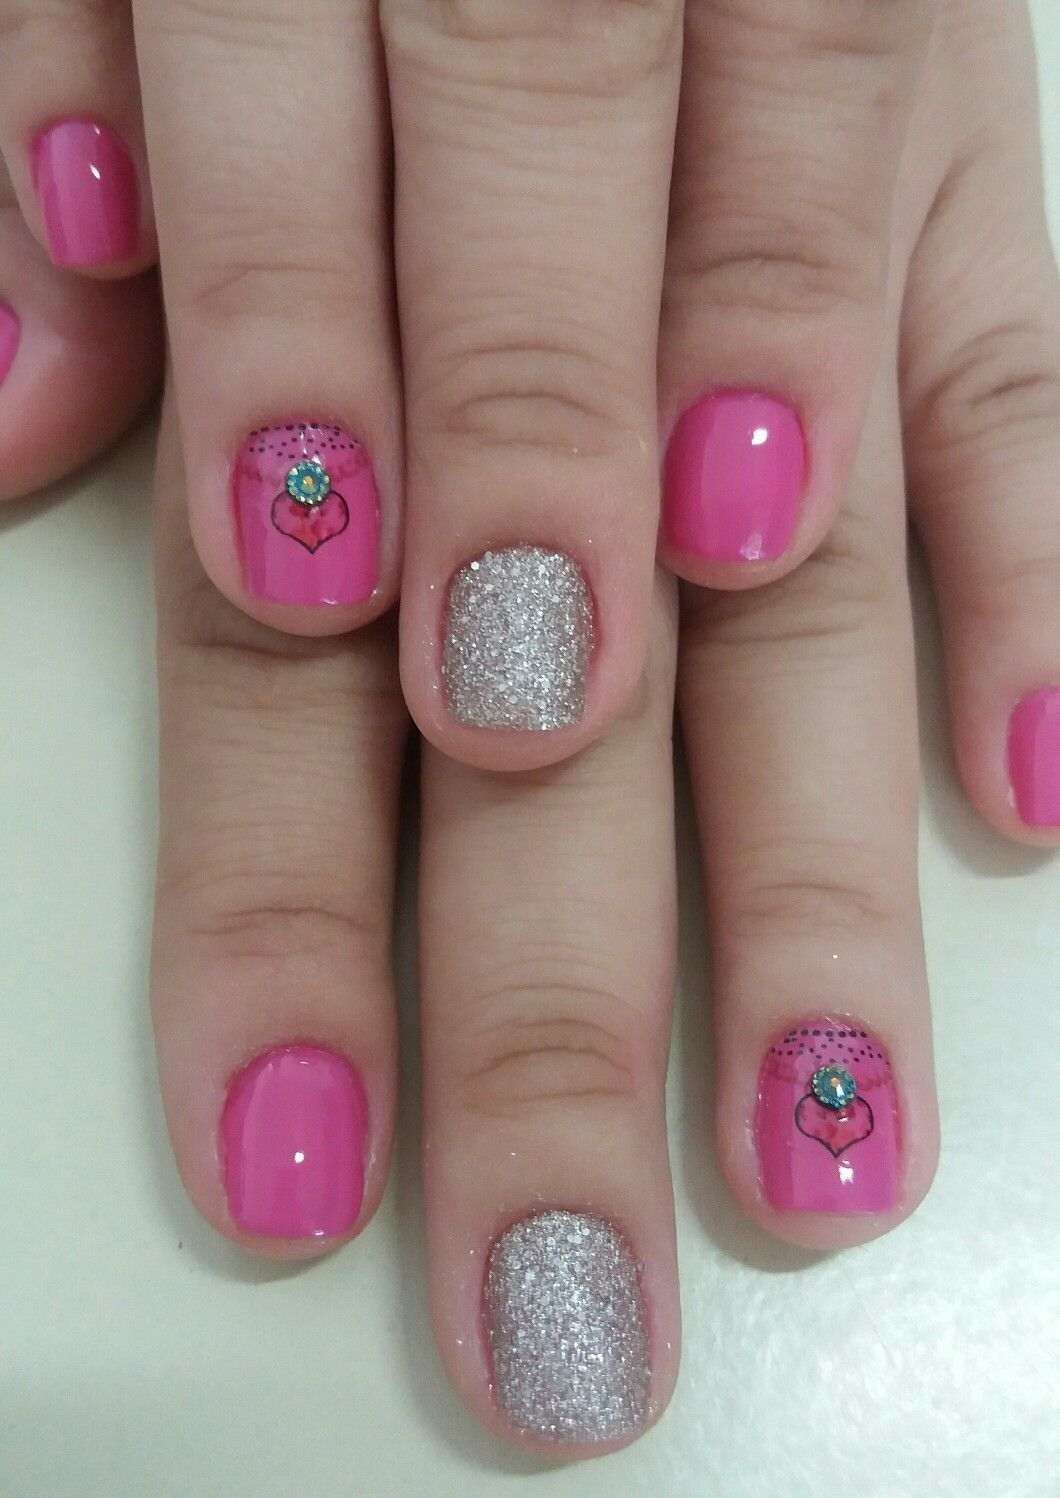 Pin by shweta sangwan on nail design pinterest pedicures and